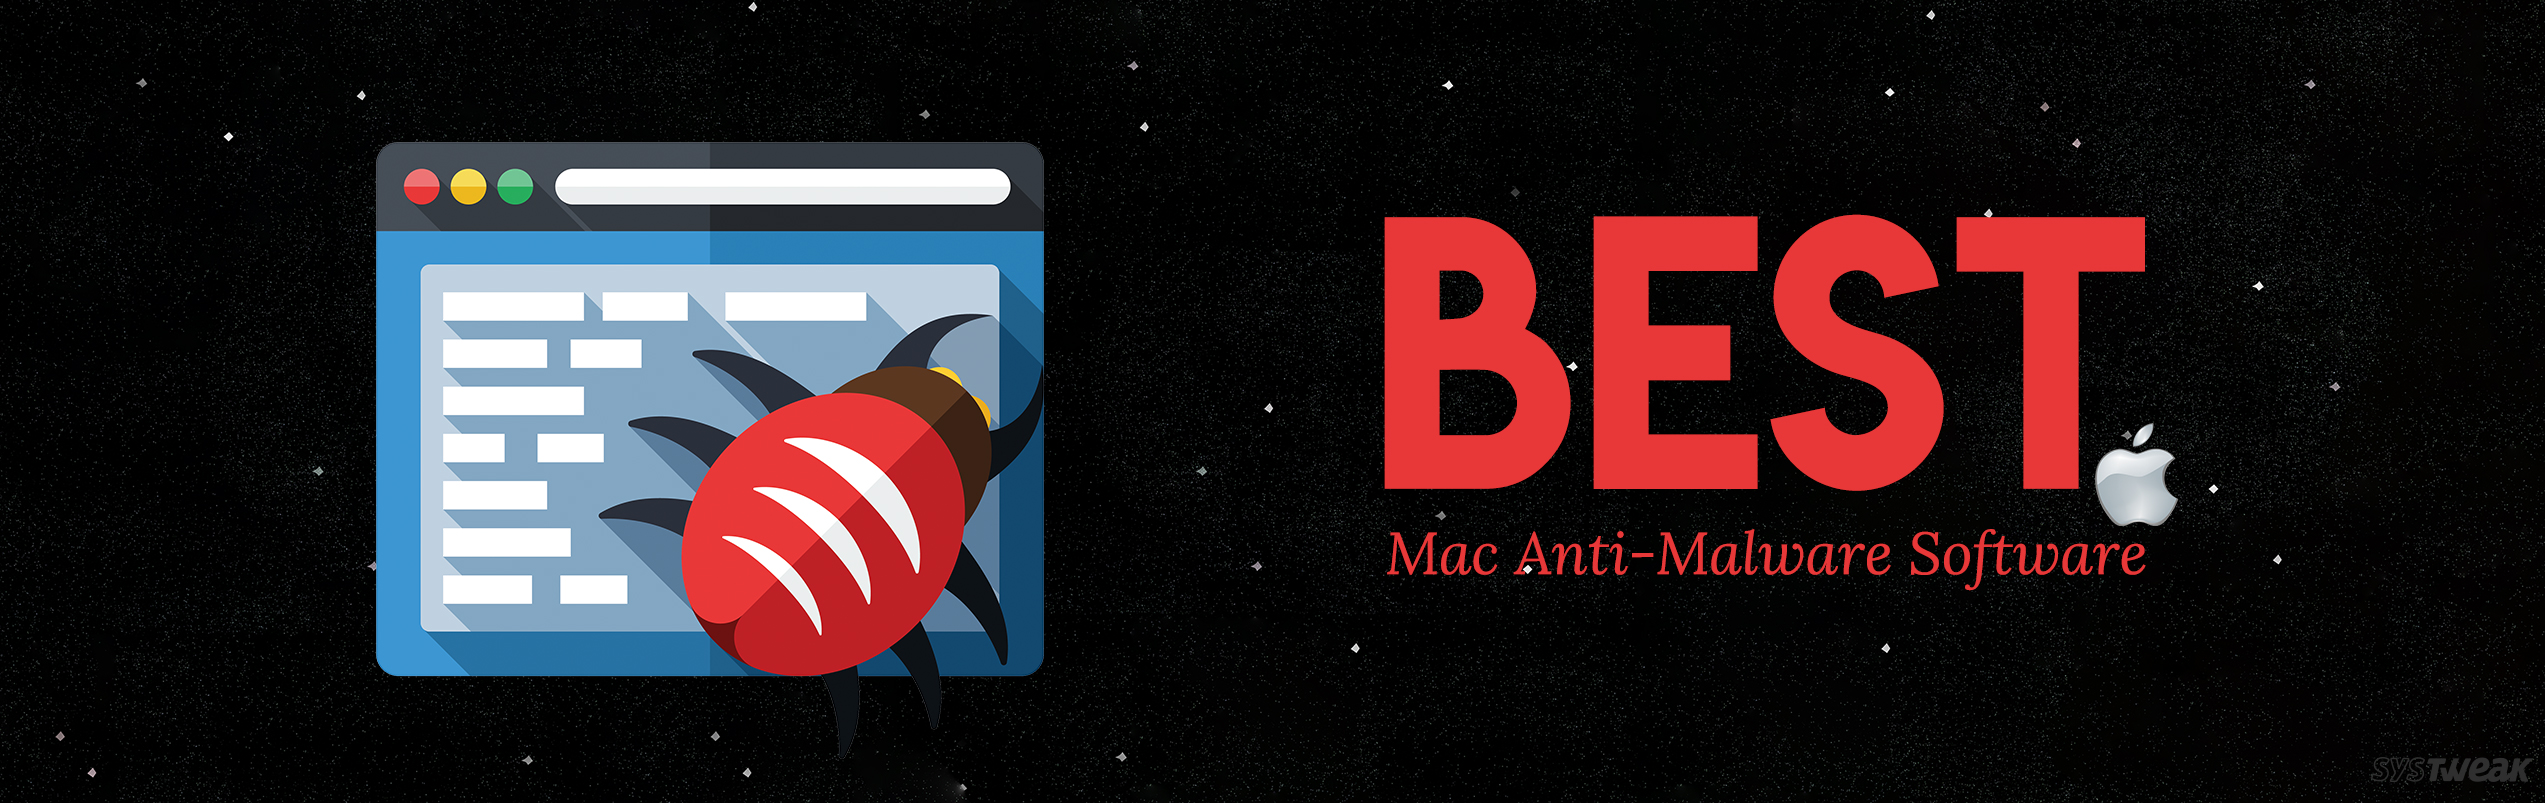 11 Best Anti-Malware Software For Mac 2018